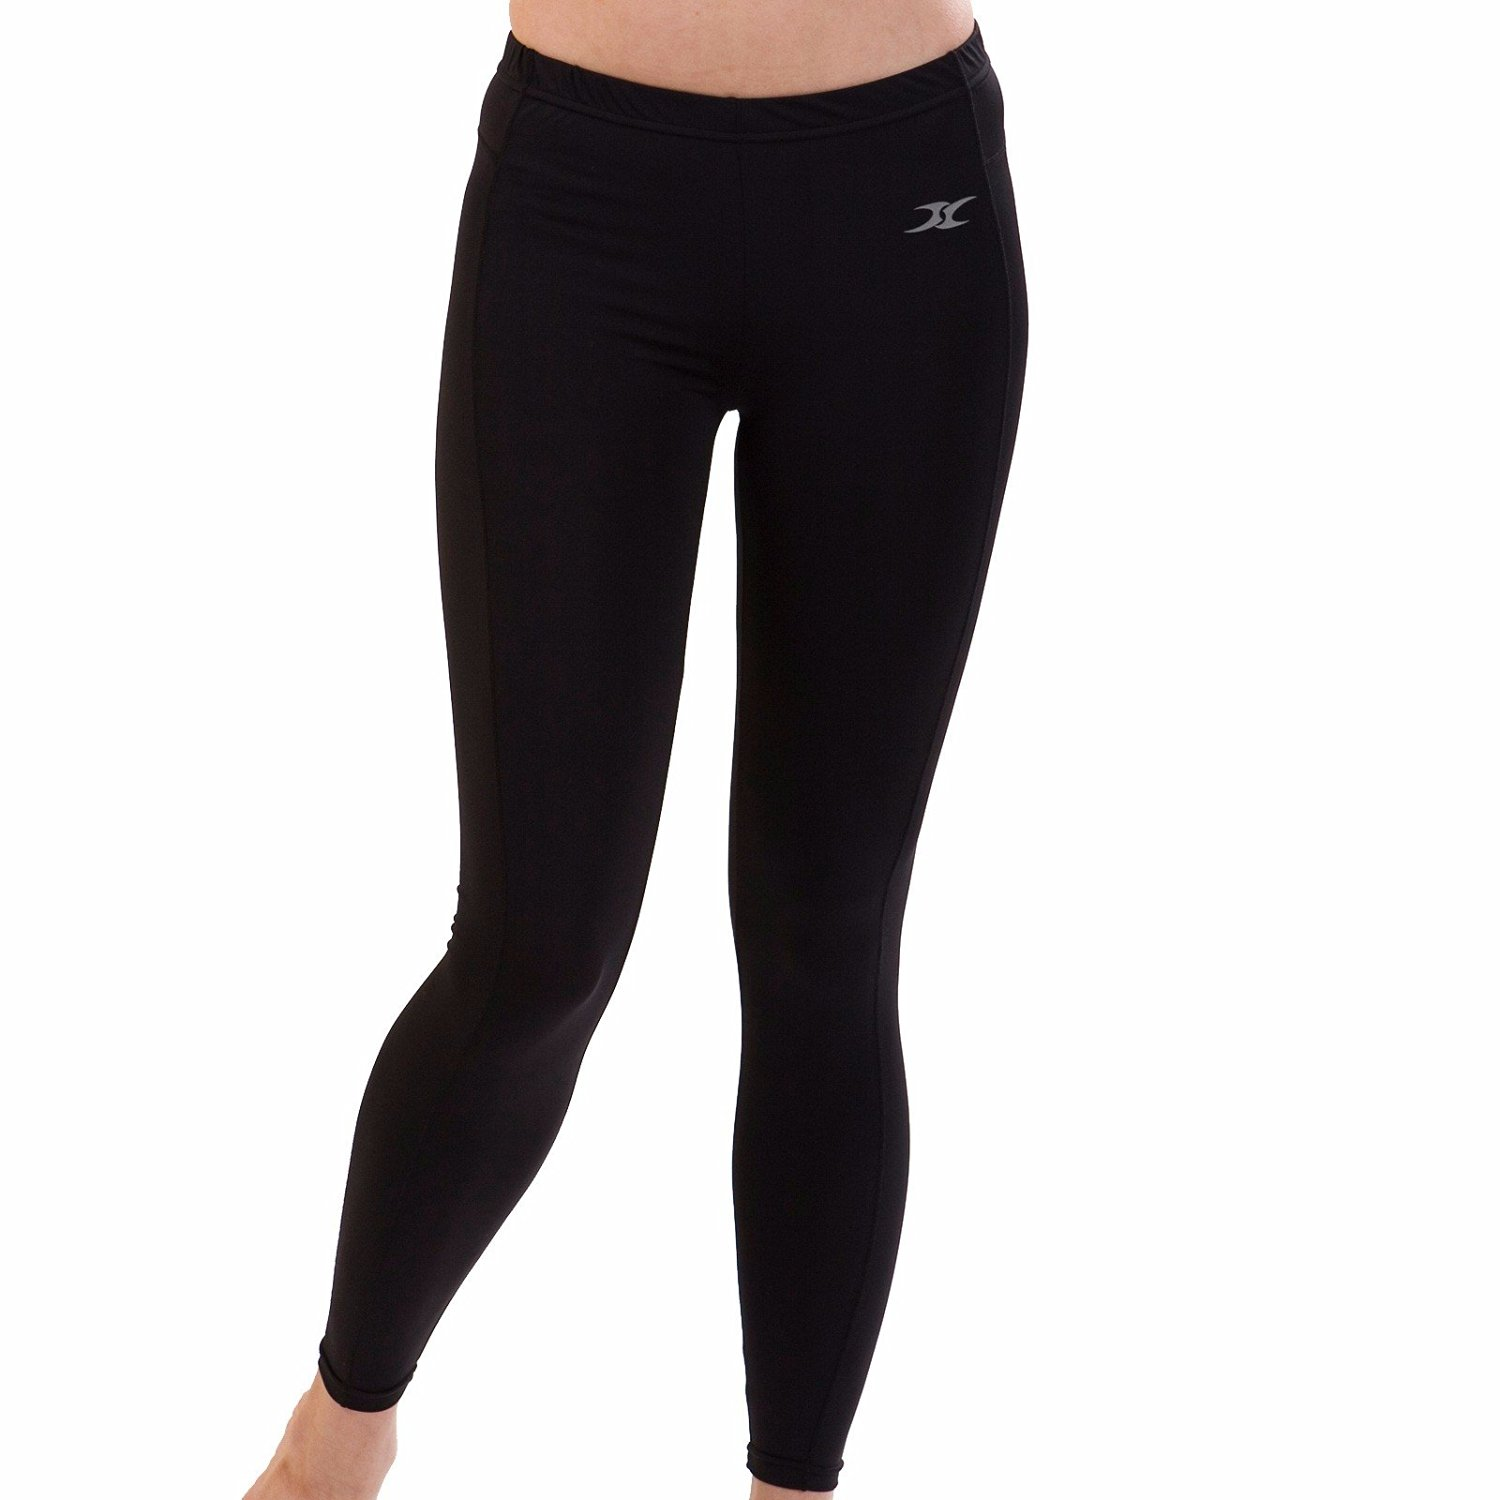 927f8beea2af0 Get Quotations · Women Thermal Underwear Pants Leggings Tights Base Layer  Compression Bottoms NPW